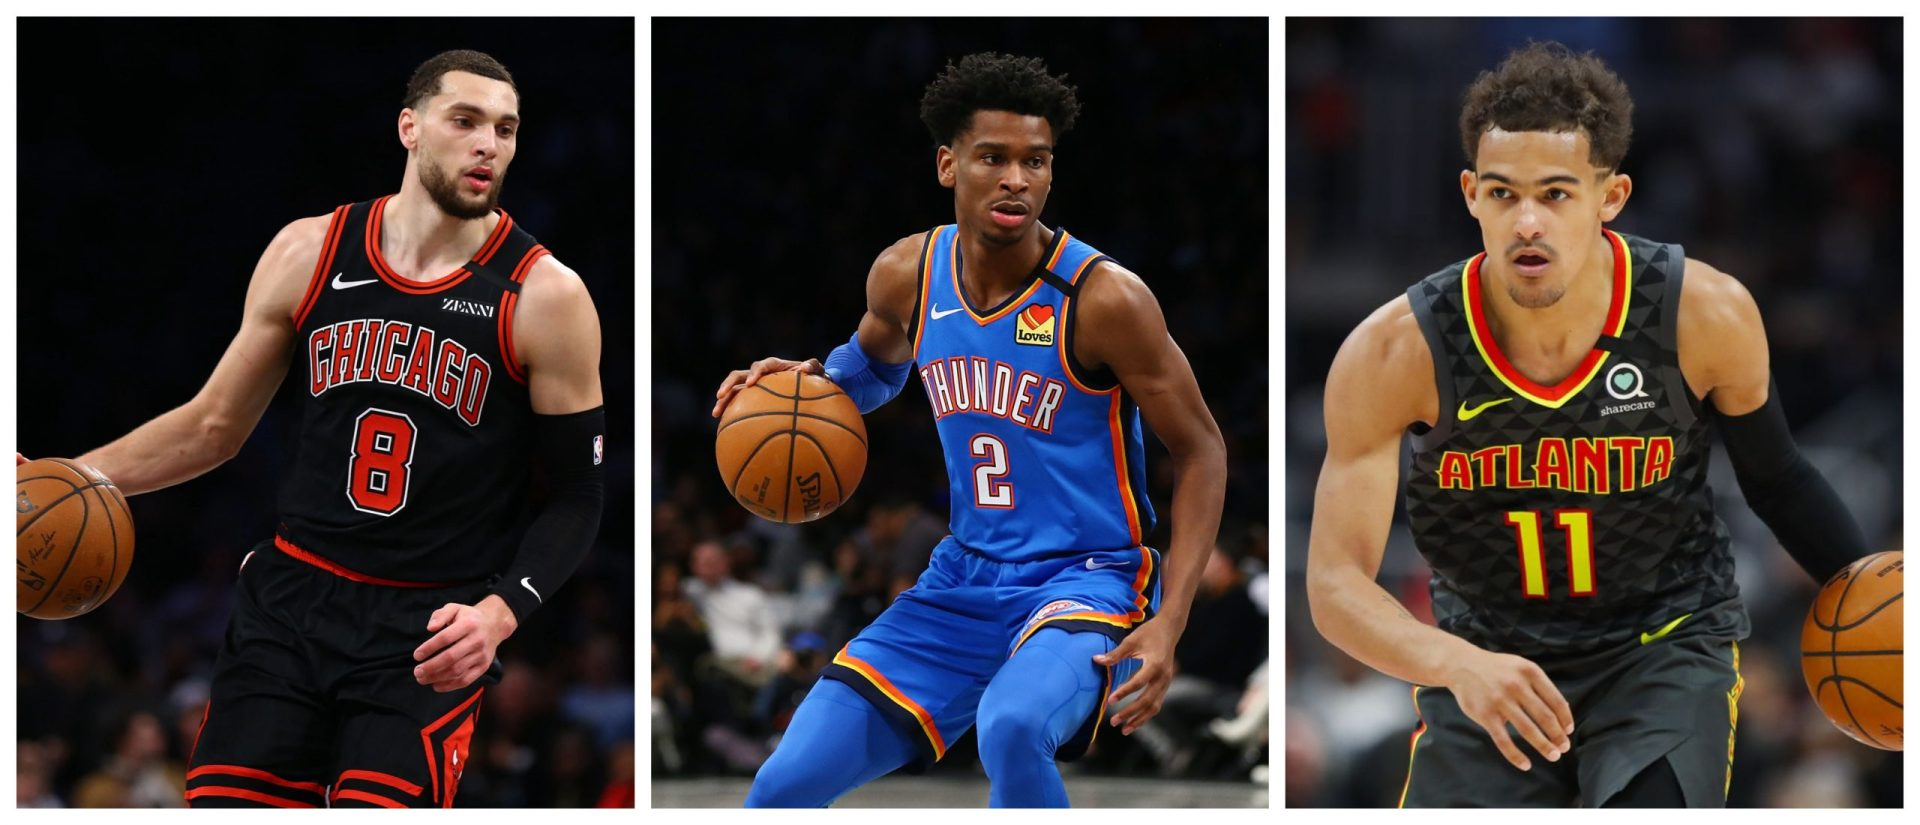 NBA Week 10 Feb 24 results: Scores, standings, match summary and highlights - THE SPORTS ROOM